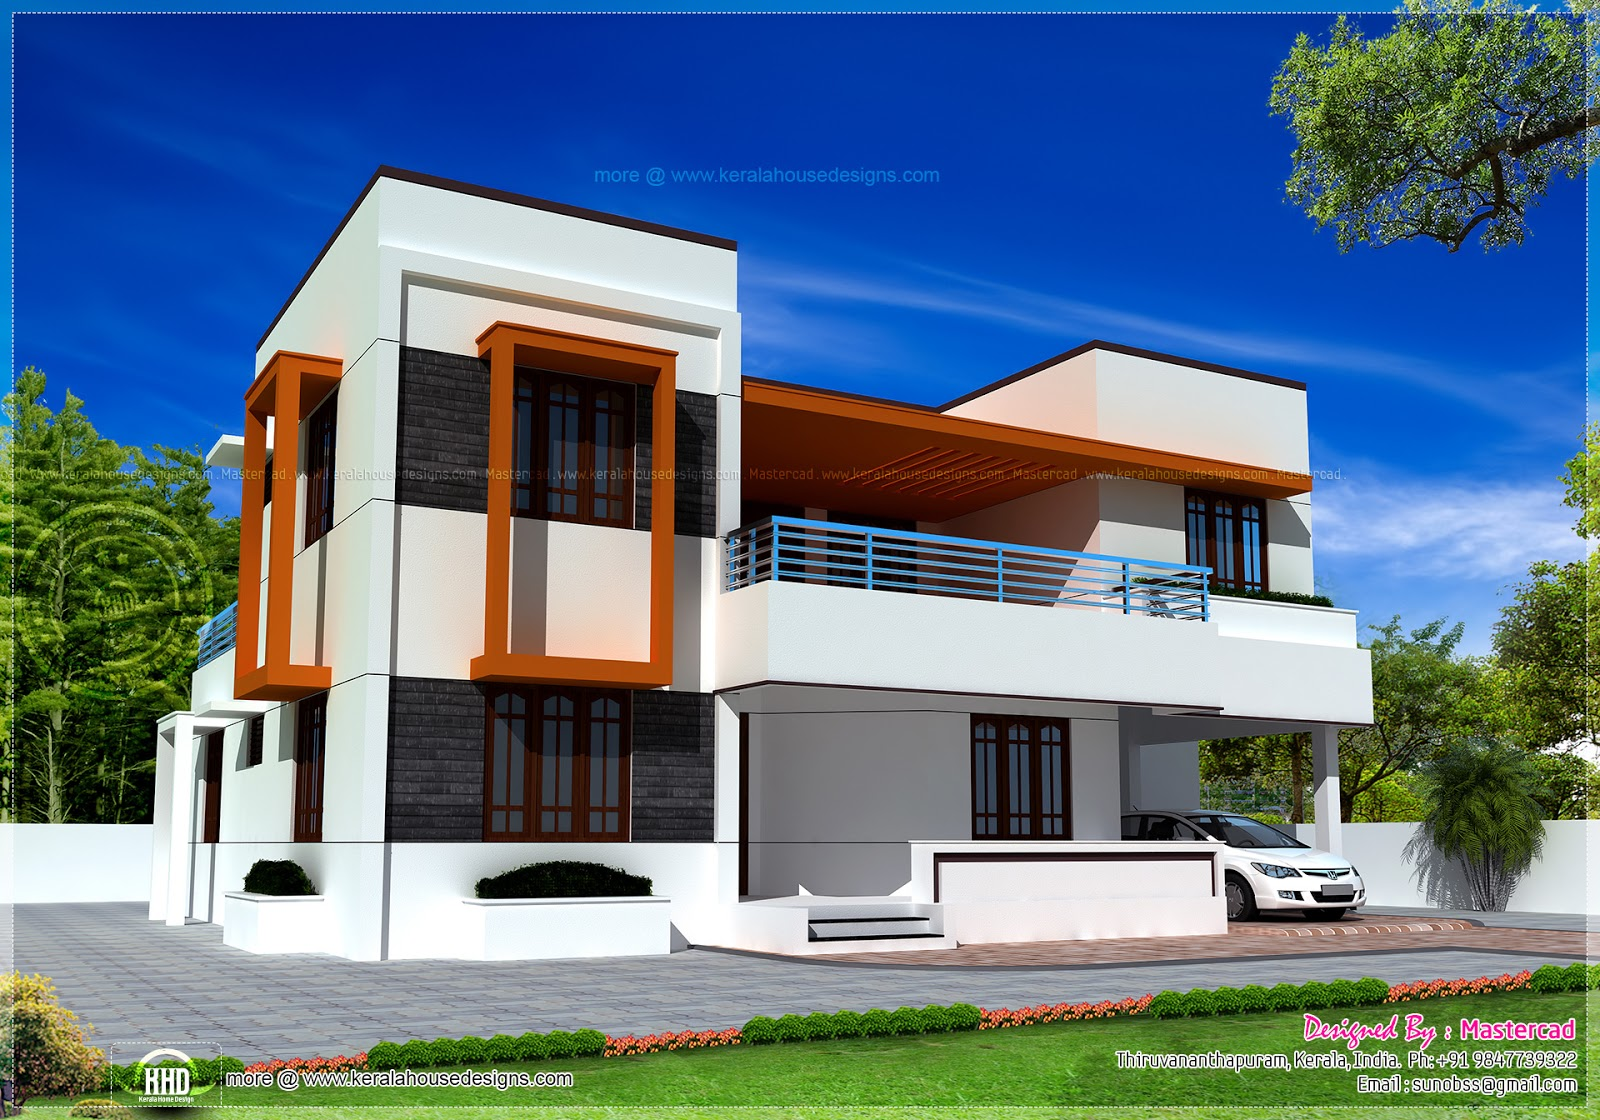 4 bedroom flat roof house in 2548 sq-ft - Kerala home ...